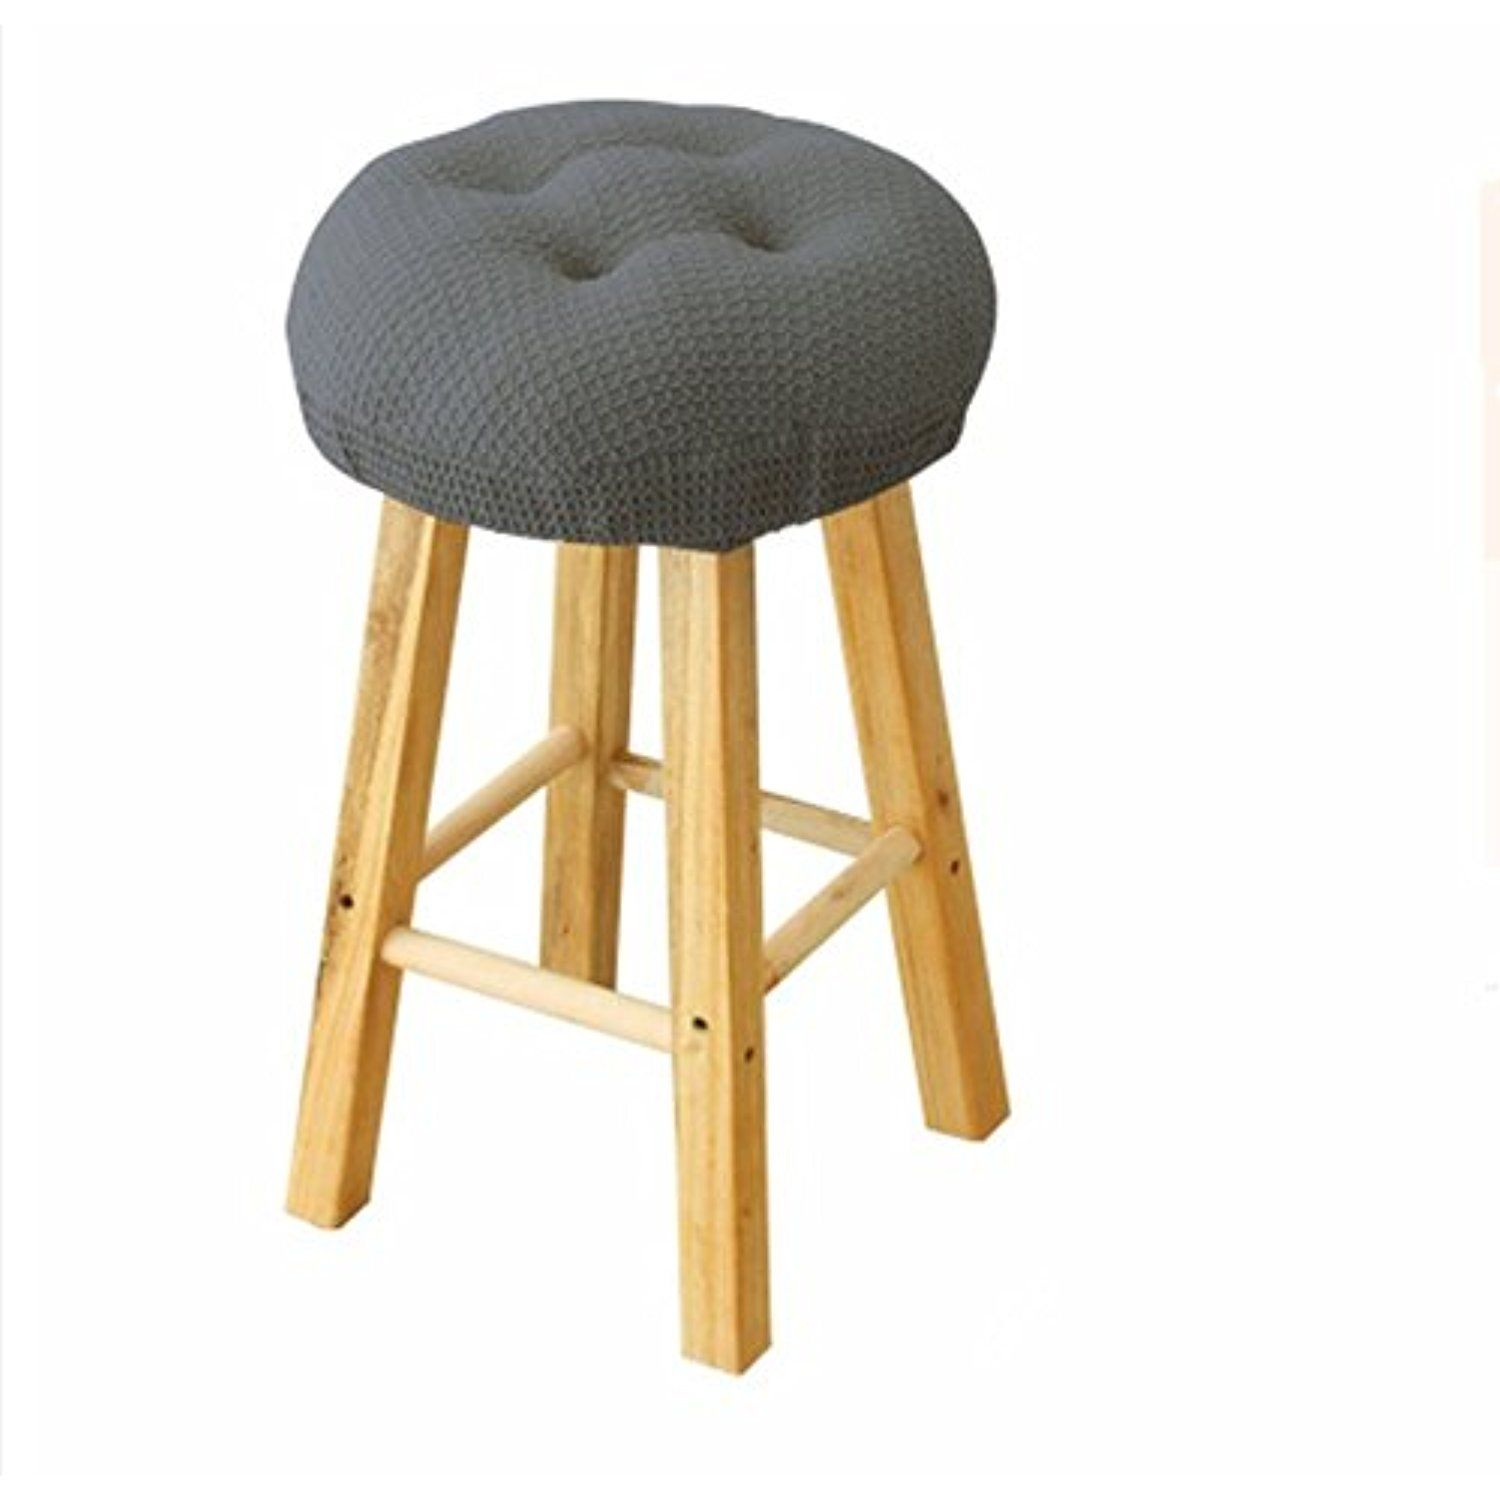 12 Round 31cm Bar Stool Cover Breathable Fabric To Protect Or Make Your Stool Chairs New Suitable For Adjusta Bar Stool Covers Stool Covers Adjustable Stool